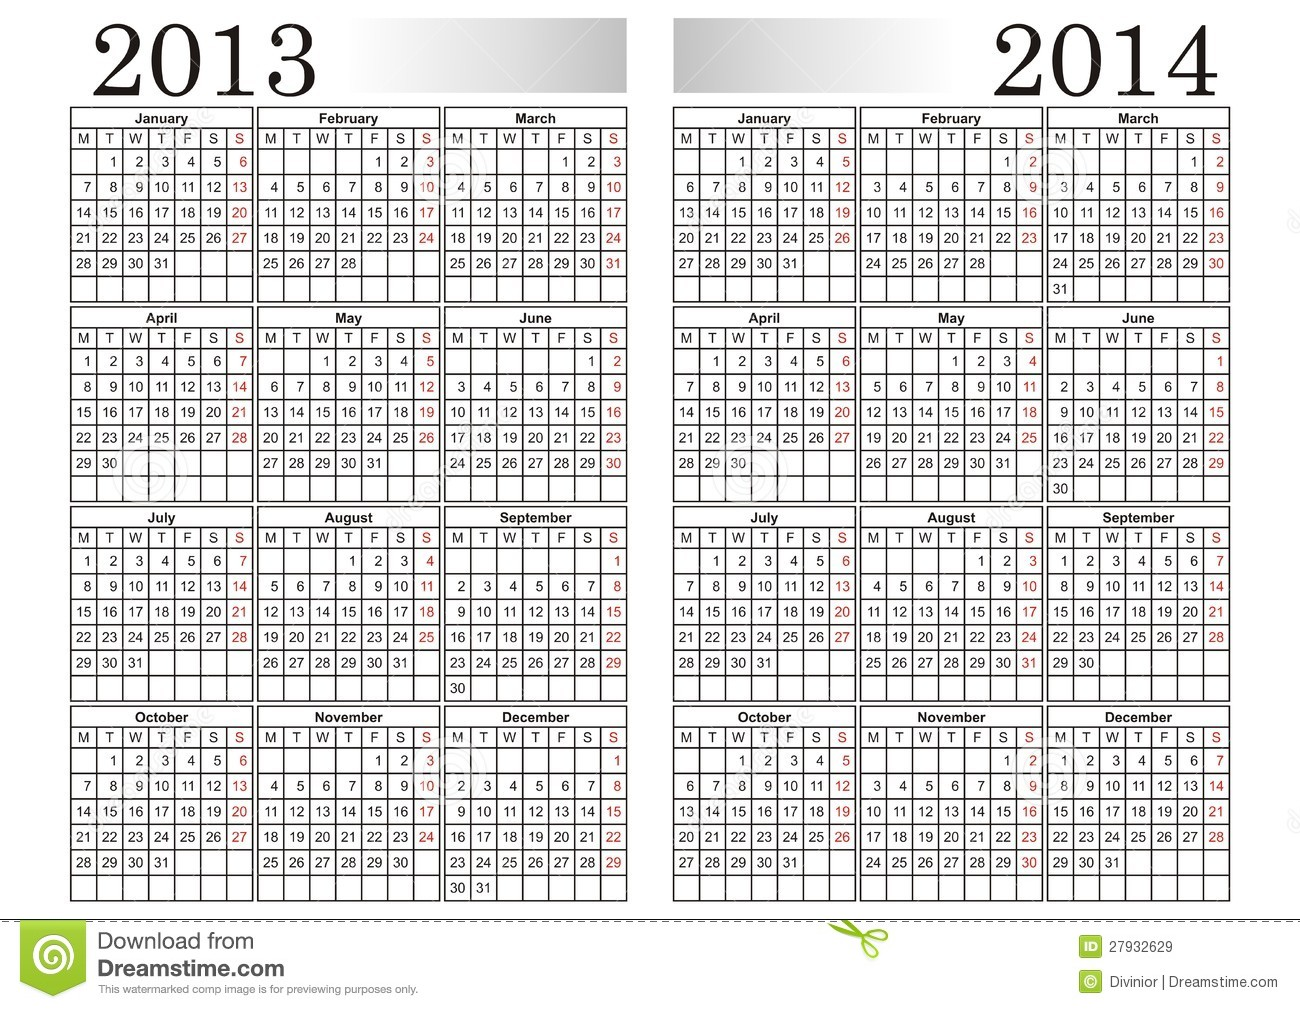 Calendar 2013 2014 Stock Vector Image Of Vector Months